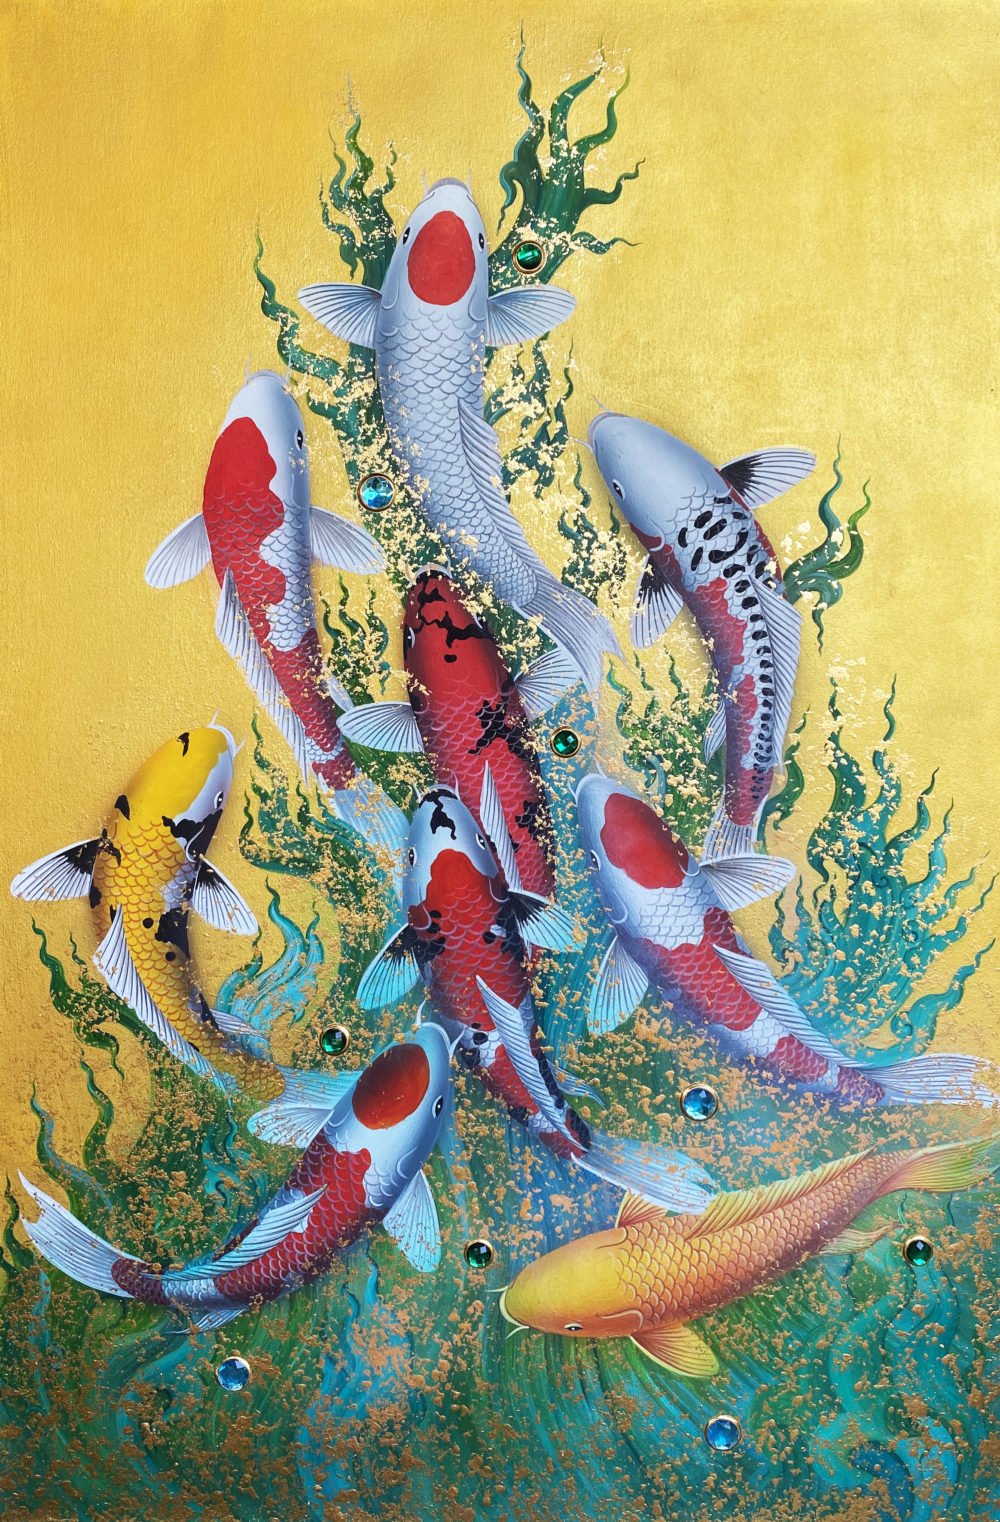 buy famous koi fish paintings for sale online